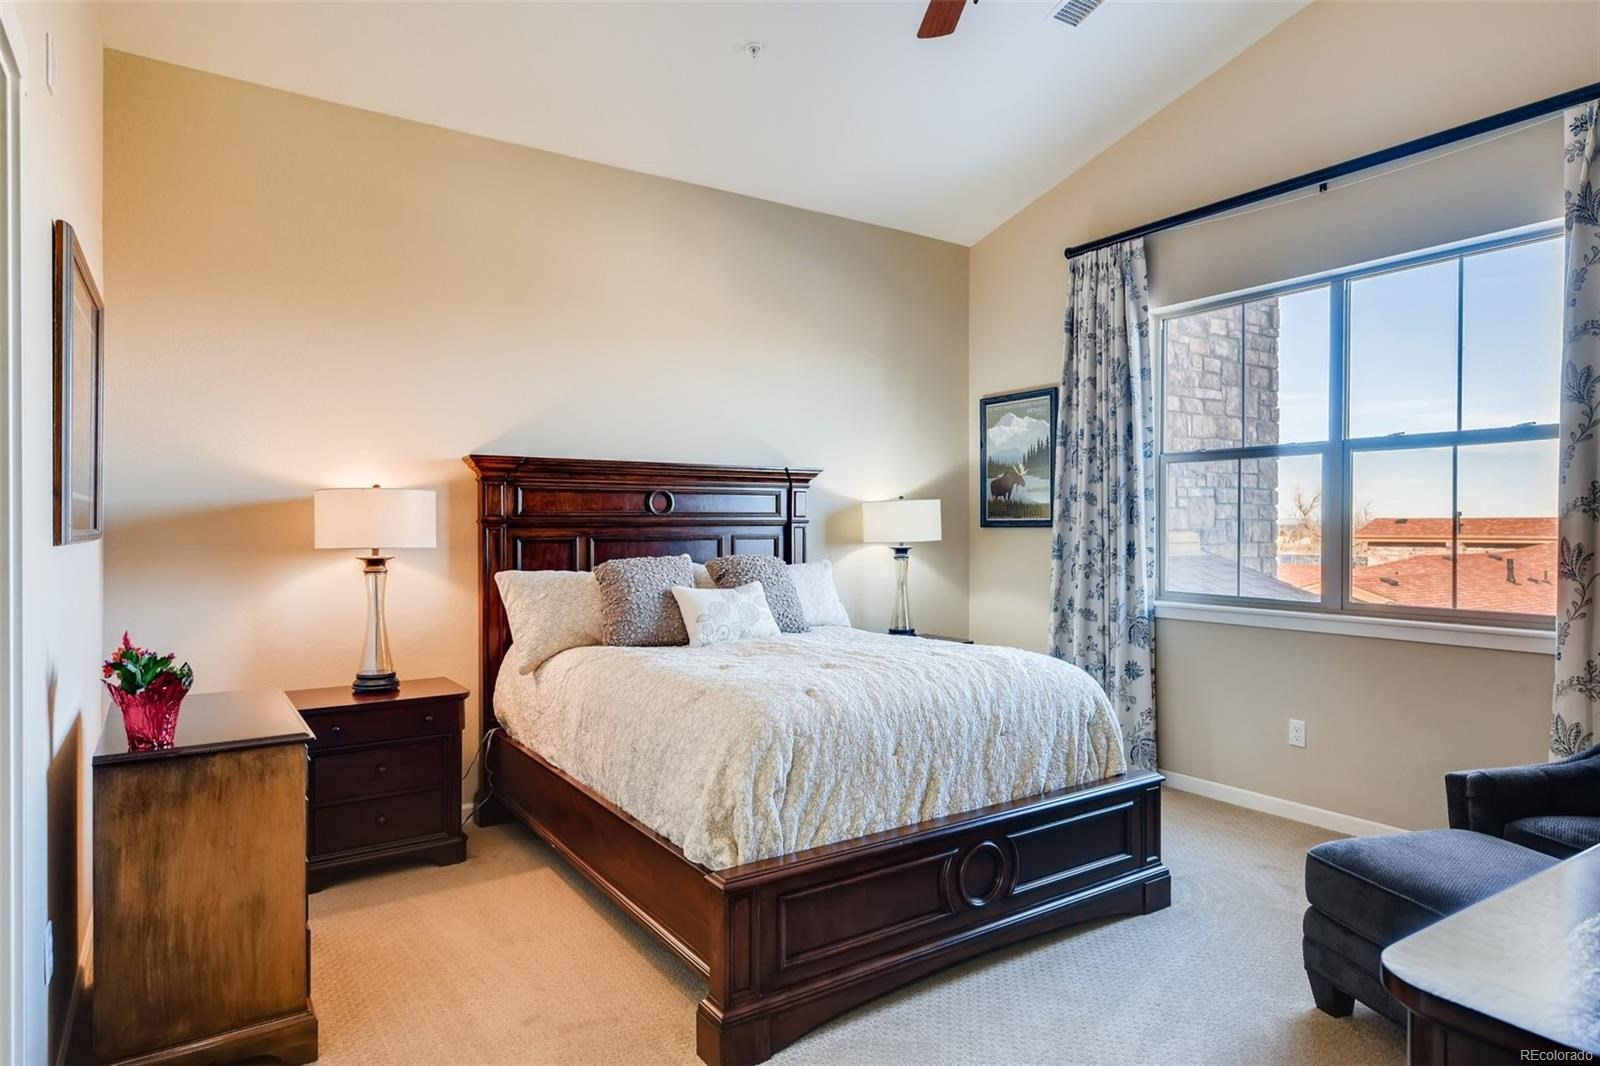 MLS# 6336333 - 15 - 2262 Primo Road #205, Highlands Ranch, CO 80129